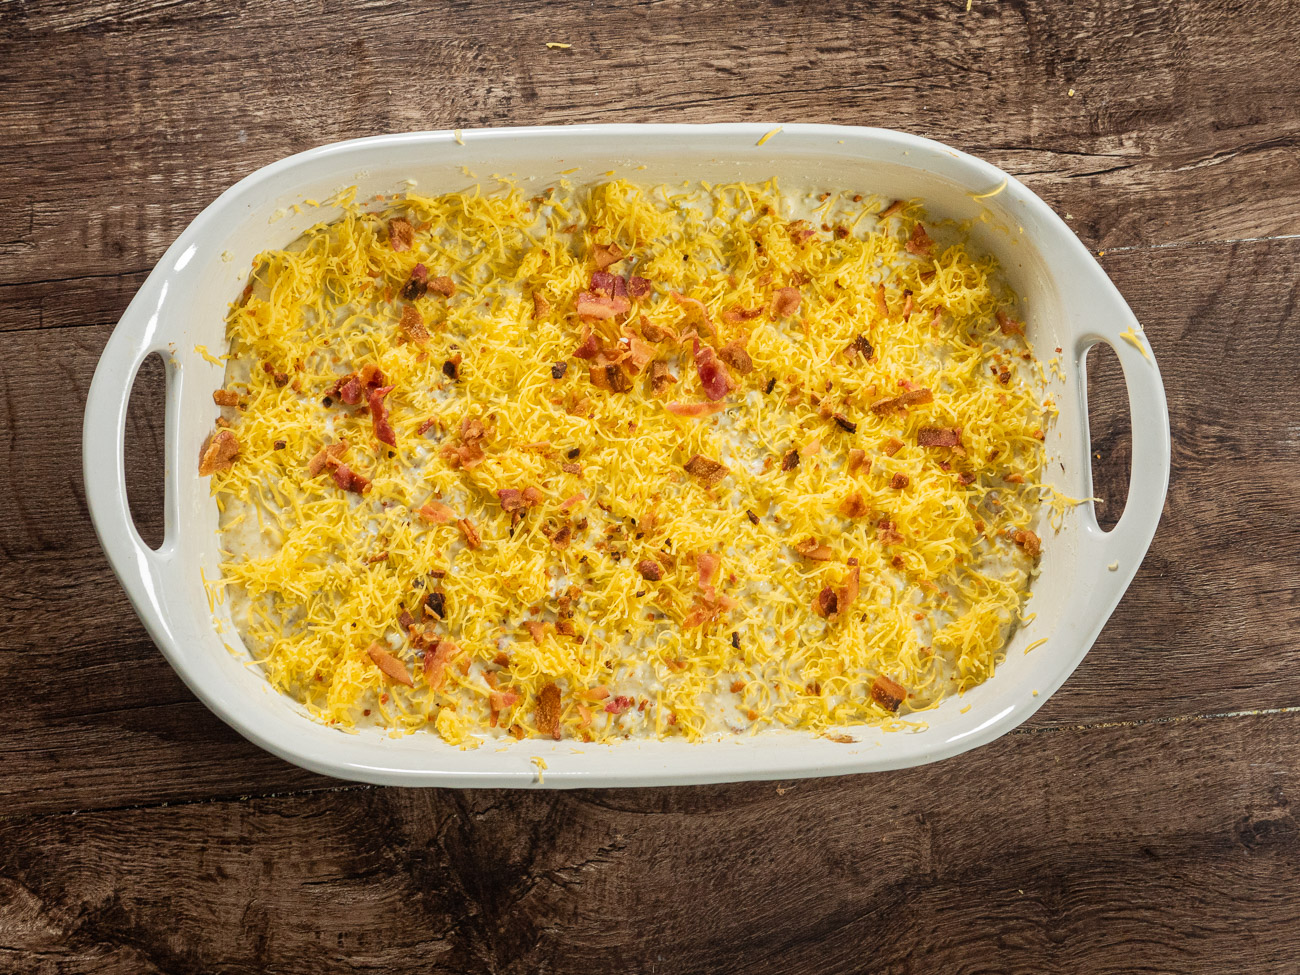 Pour mixture into prepared baking dish and top with remaining bacon and cheese. Bake until center is set and top is golden brown, 40-45 minutes. Enjoy!